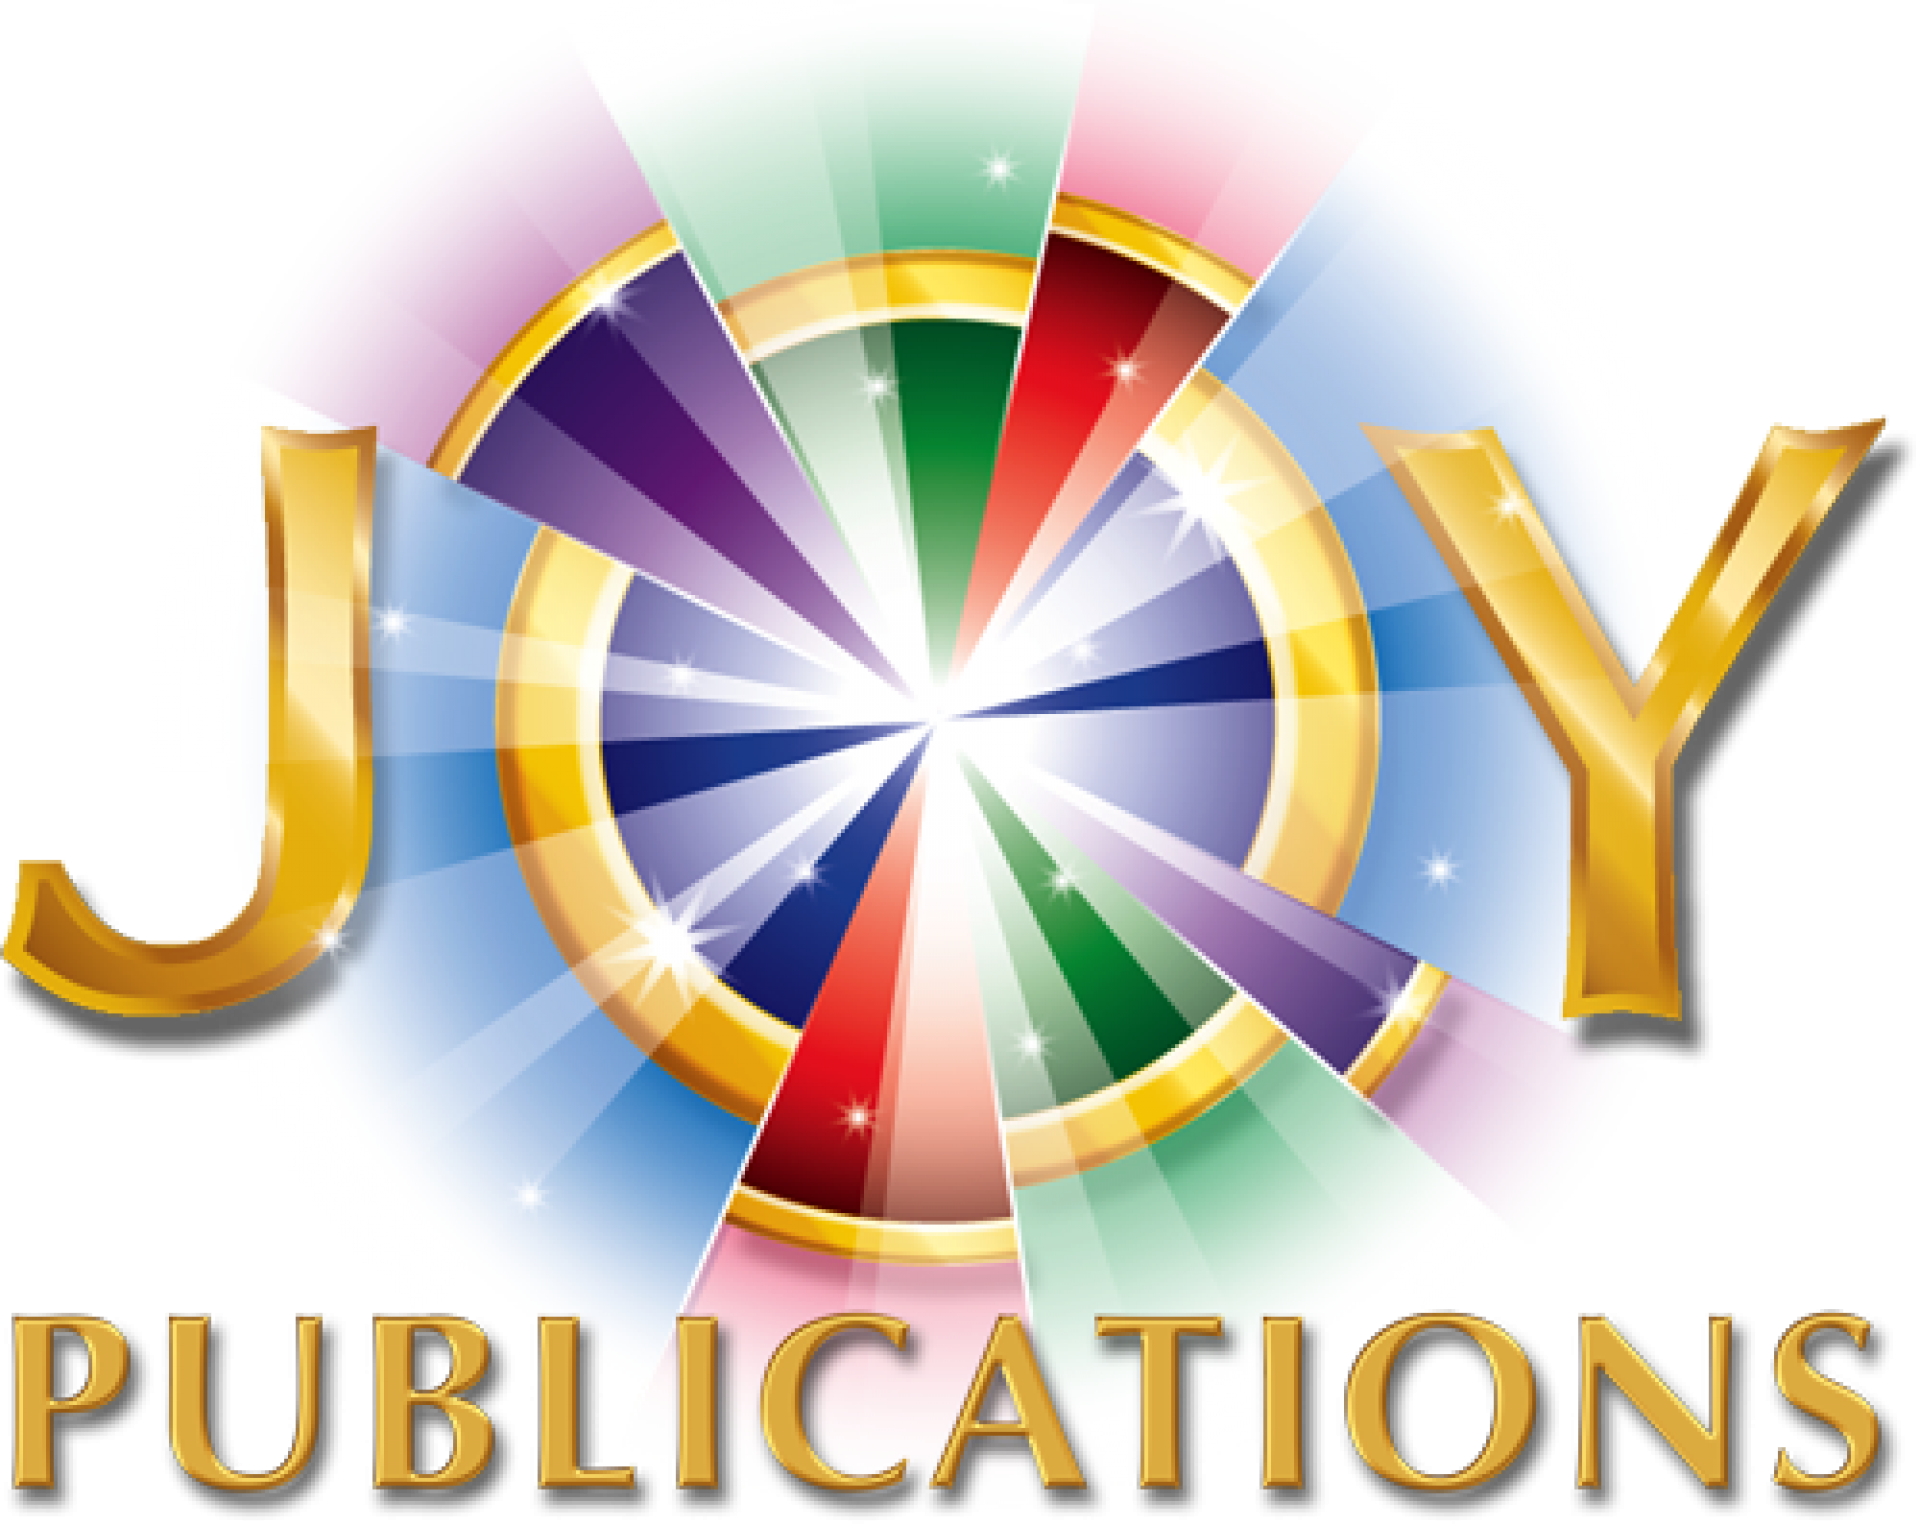 Joy Publications. Home · About